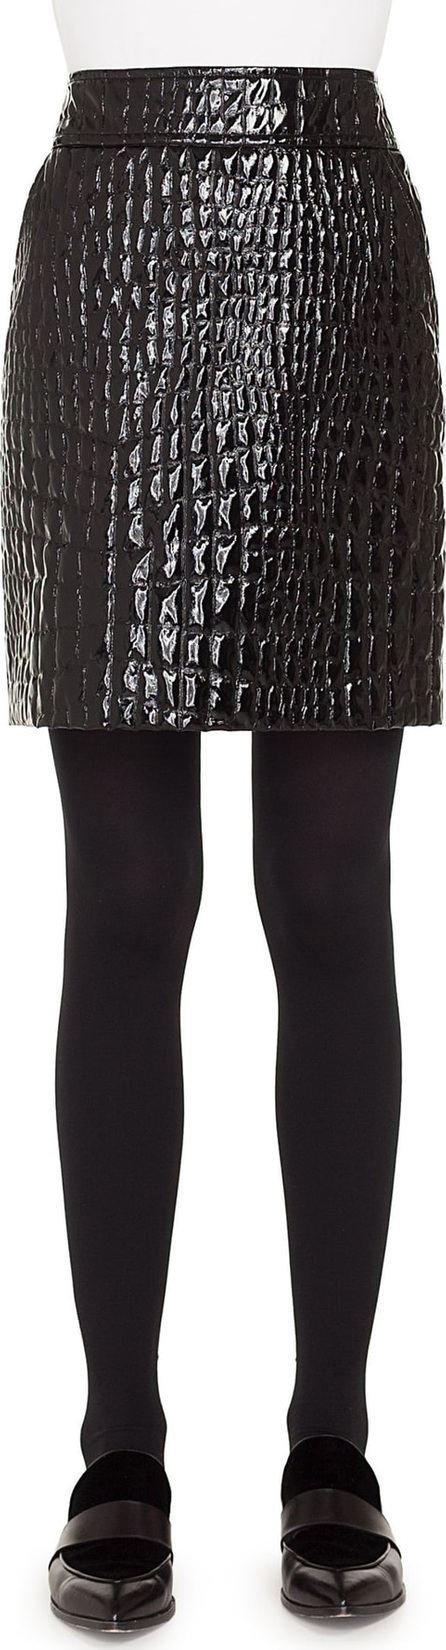 Akris Punto Croc Embossed Faux Patent Leather Skirt